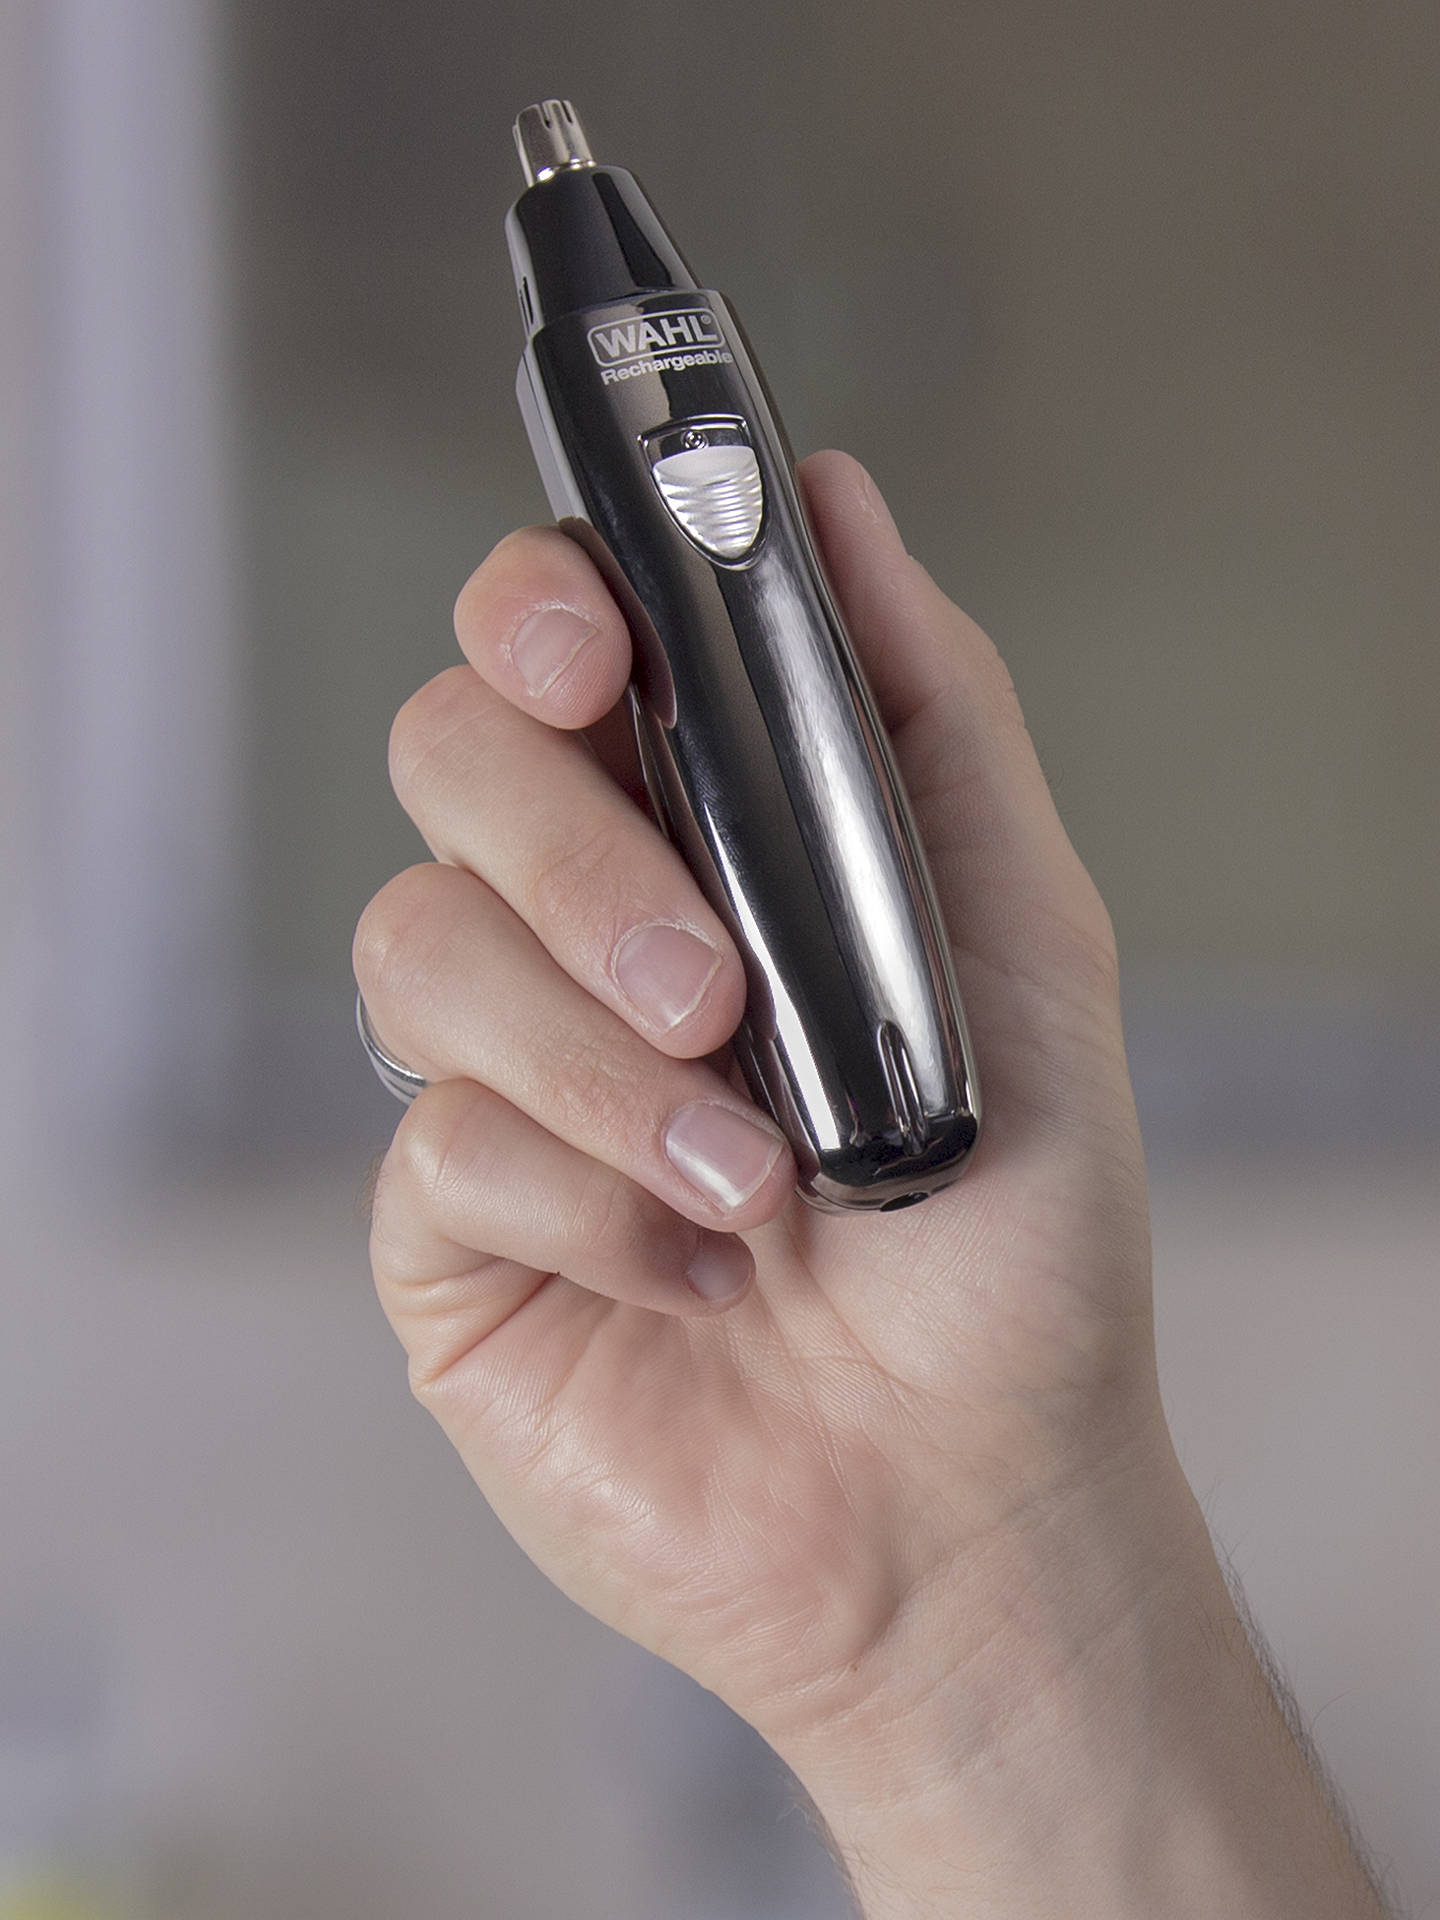 Buy Wahl Ear, Nose and Brow Rechargeable Trimmer, Black Online at johnlewis.com